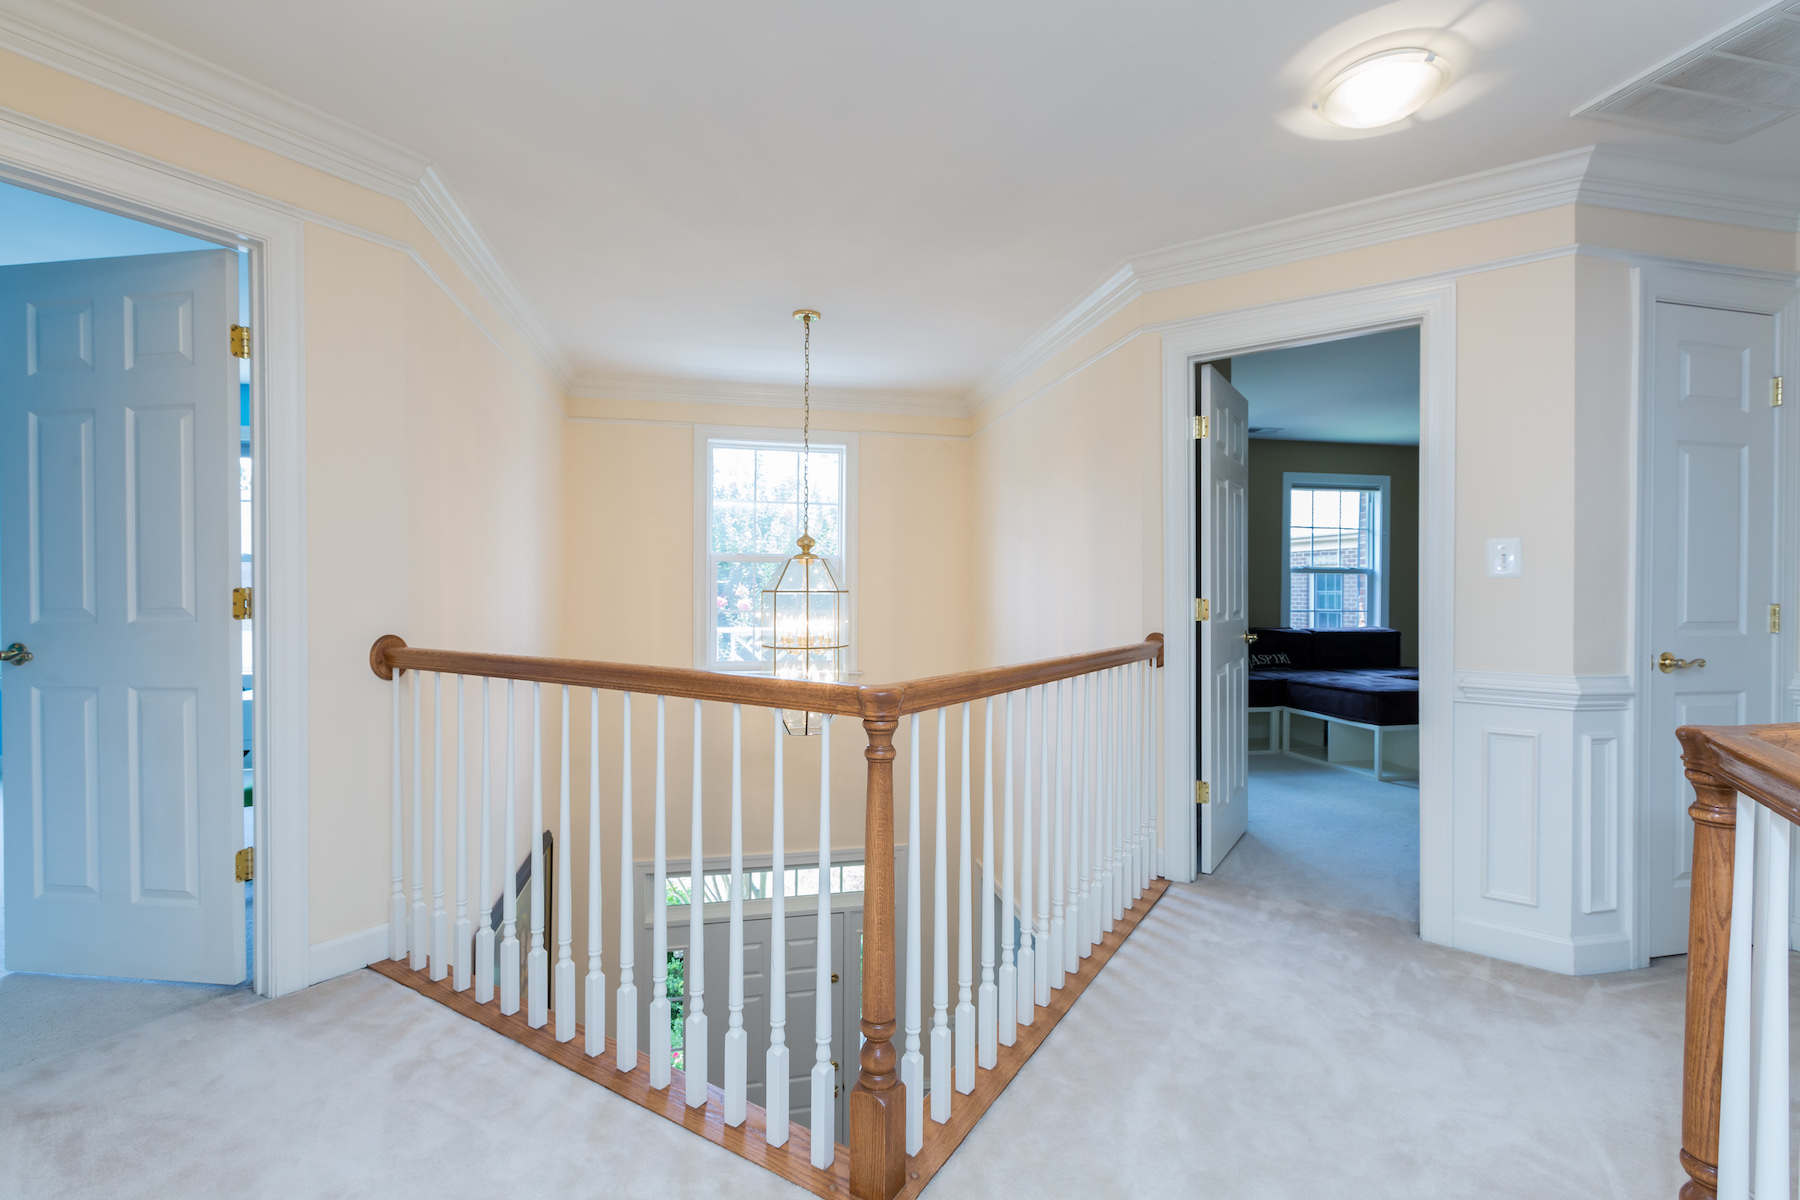 Additional photo for property listing at Falls Church 6654 Avignon Blvd Falls Church, 弗吉尼亞州 22043 美國